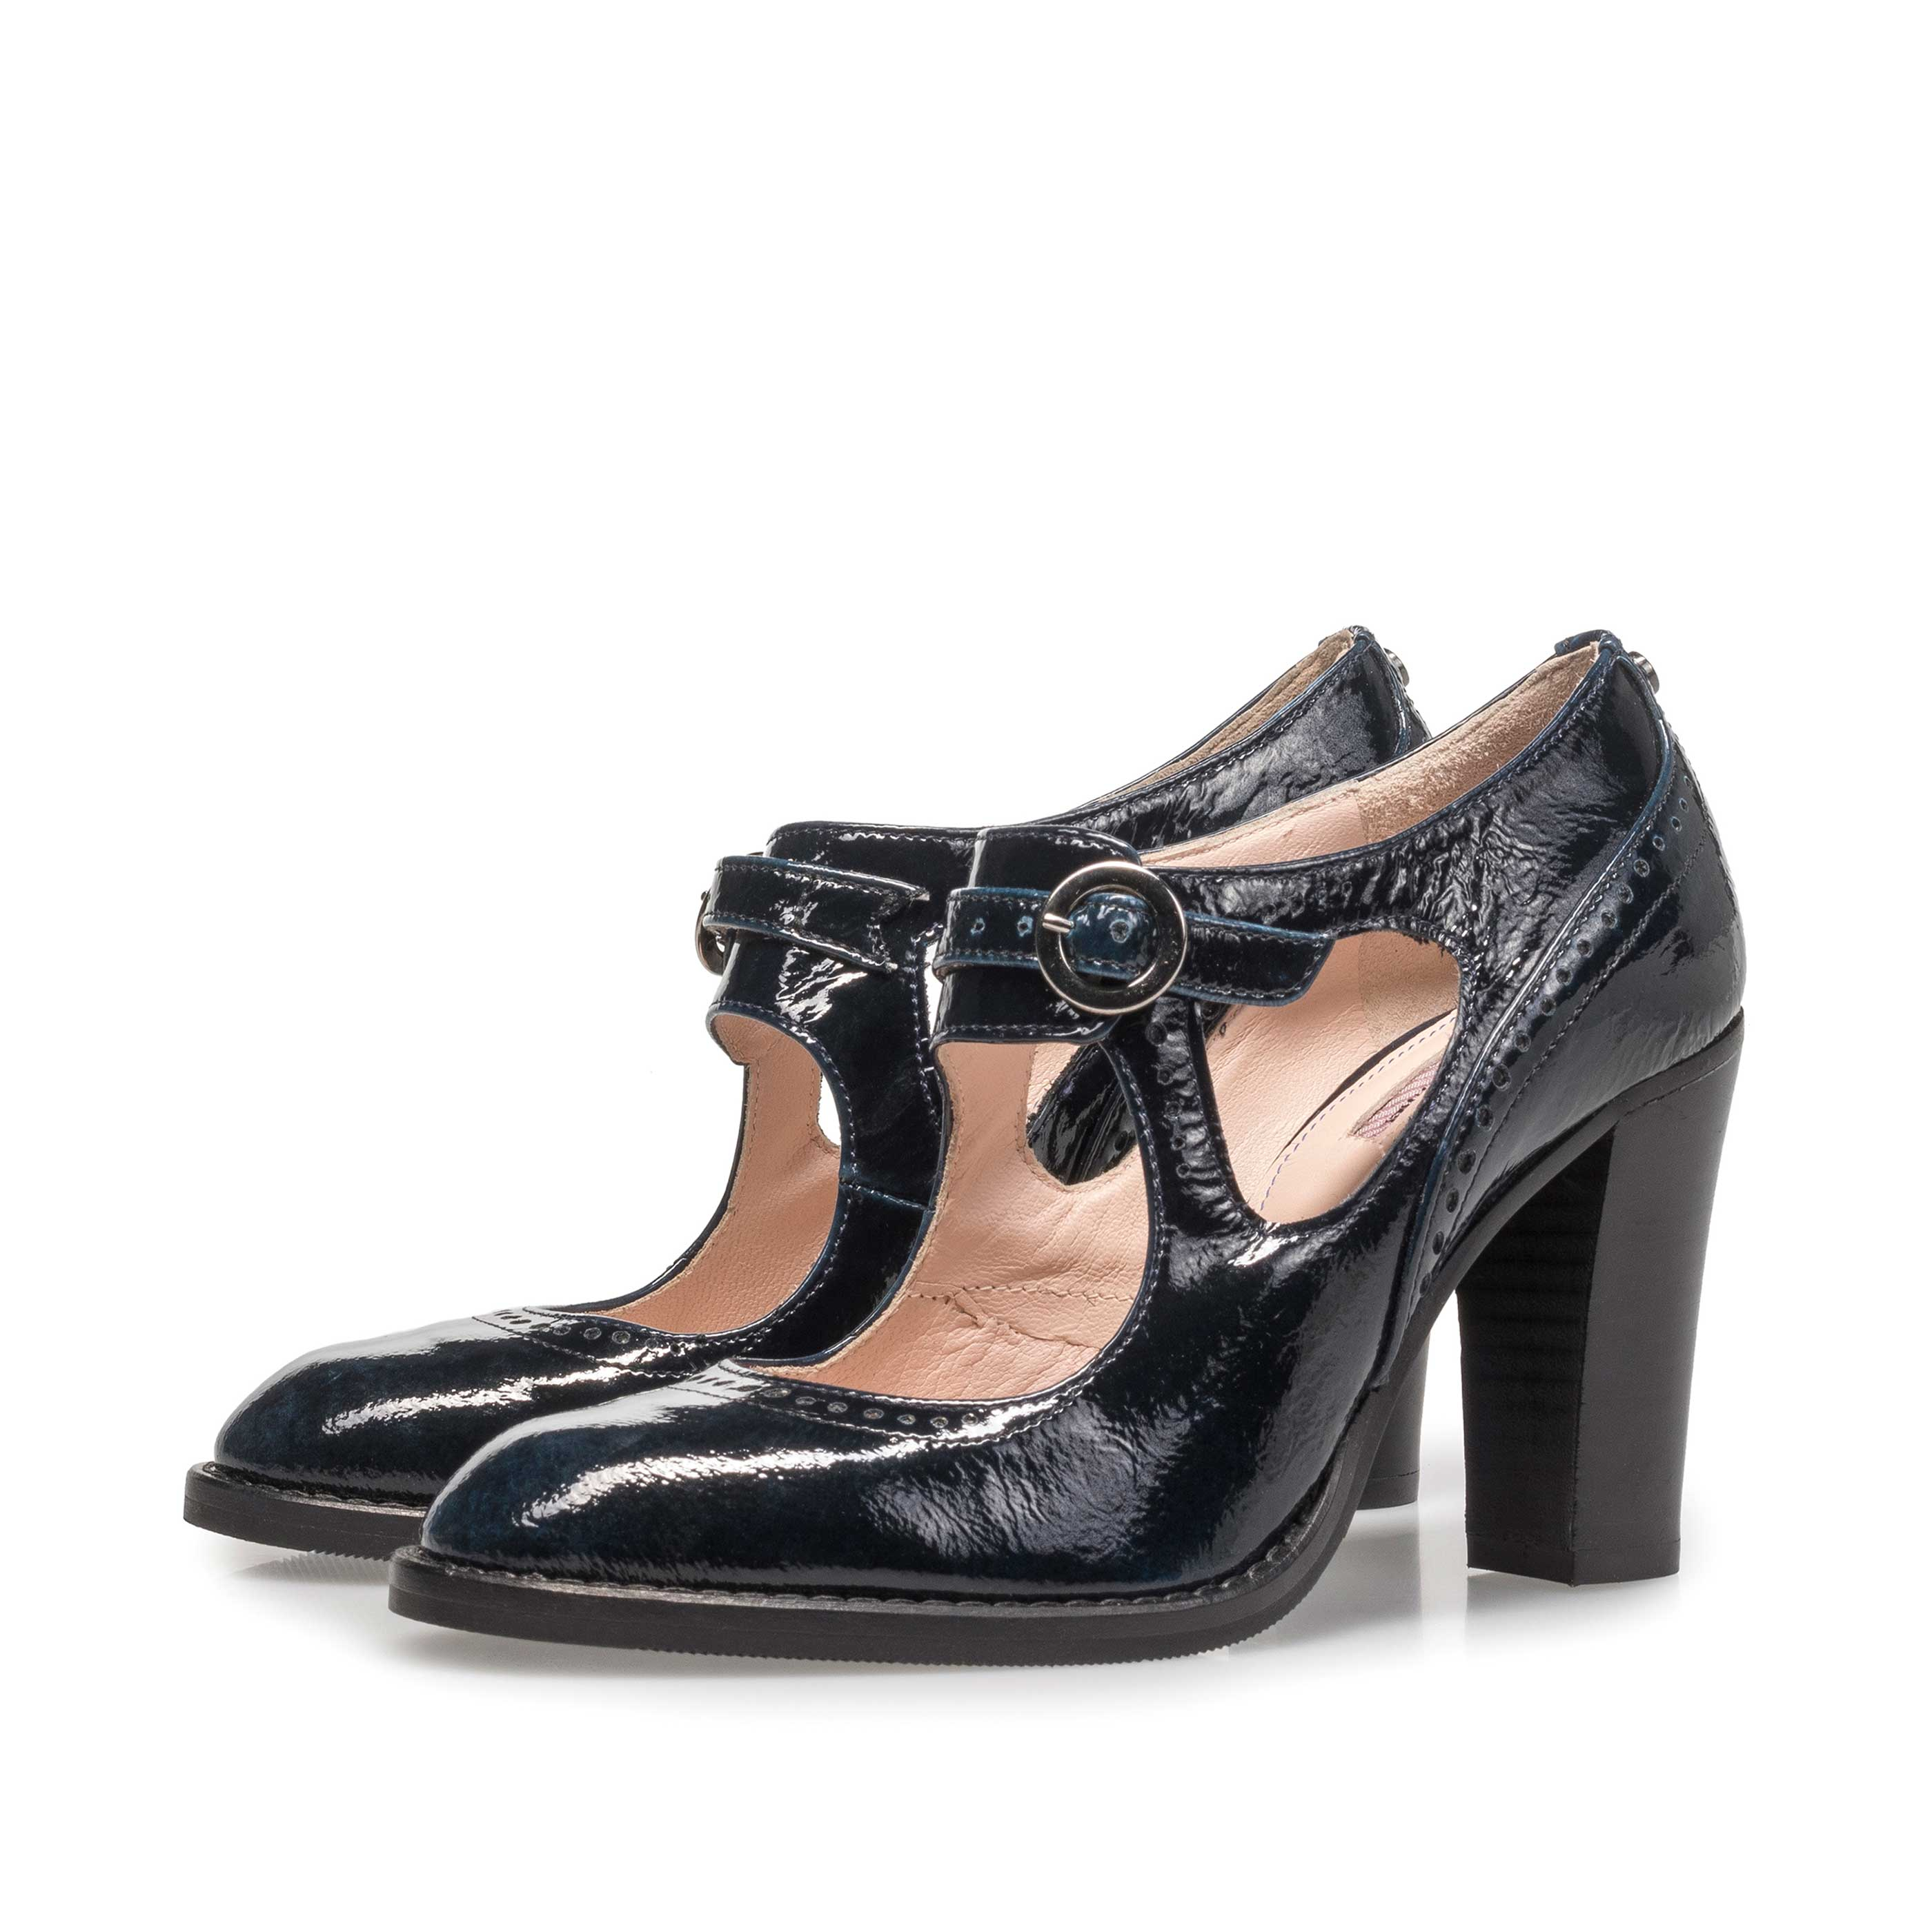 85532/01 - Blue patent leather pumps